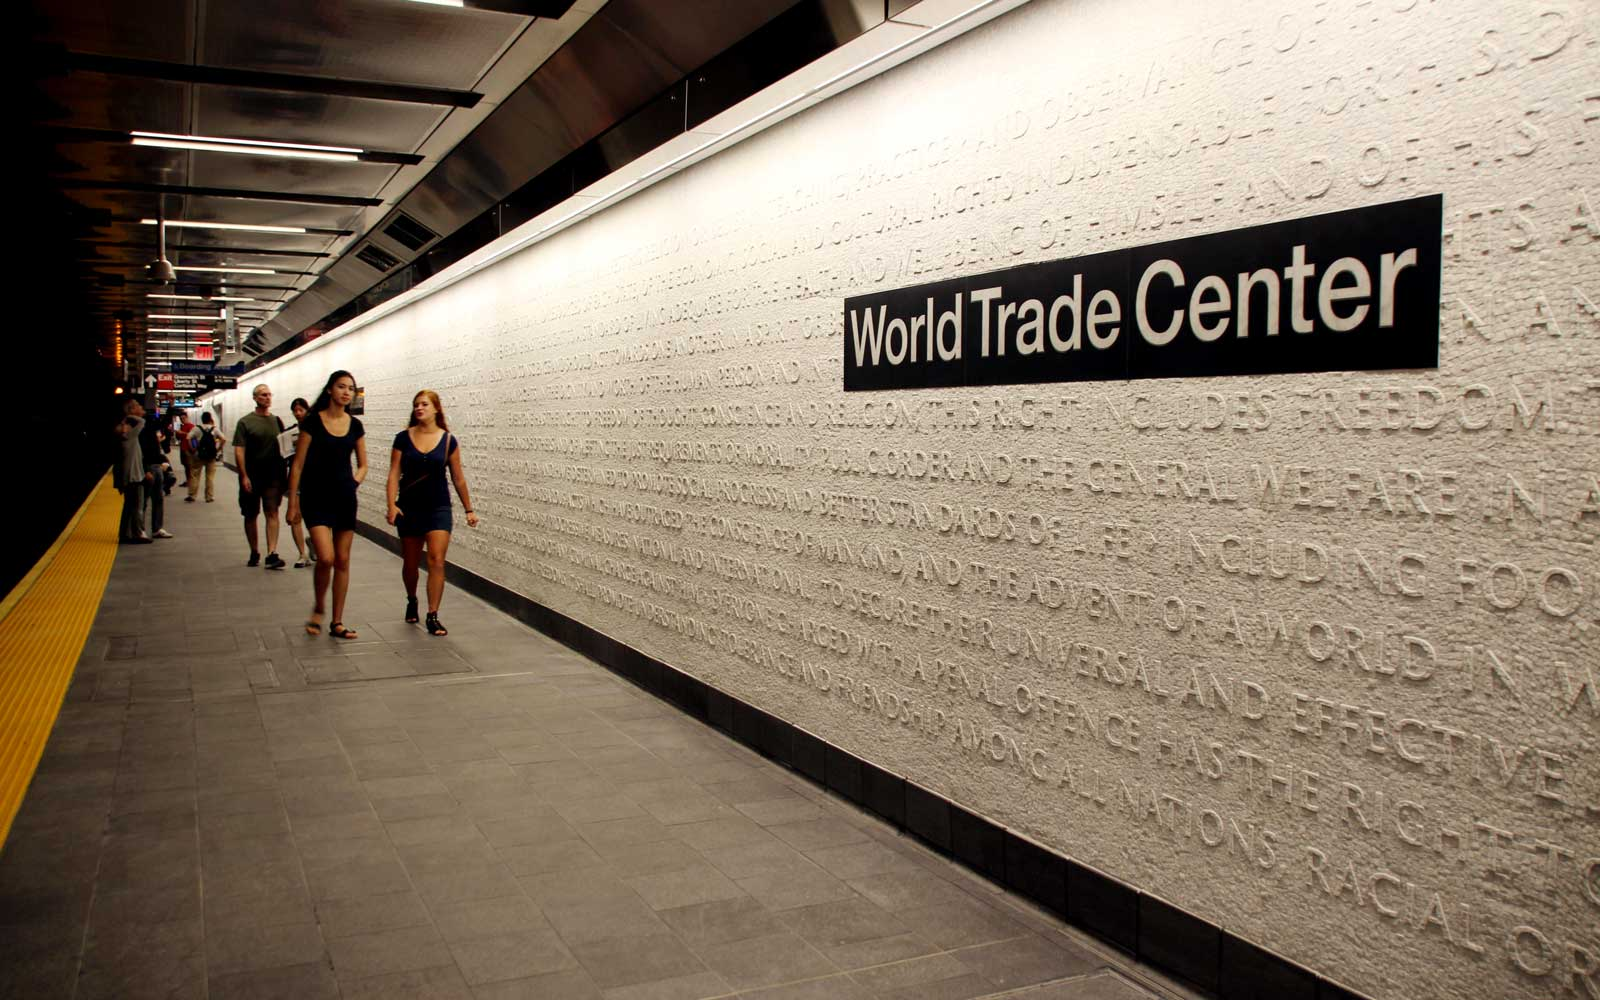 The reopened underground station WTC Cortlandt in New York. Almost 17 years after the terrorist attacks on the World Trade Center in New York, the subway station destroyed under the collapsing twin towers has reopened.